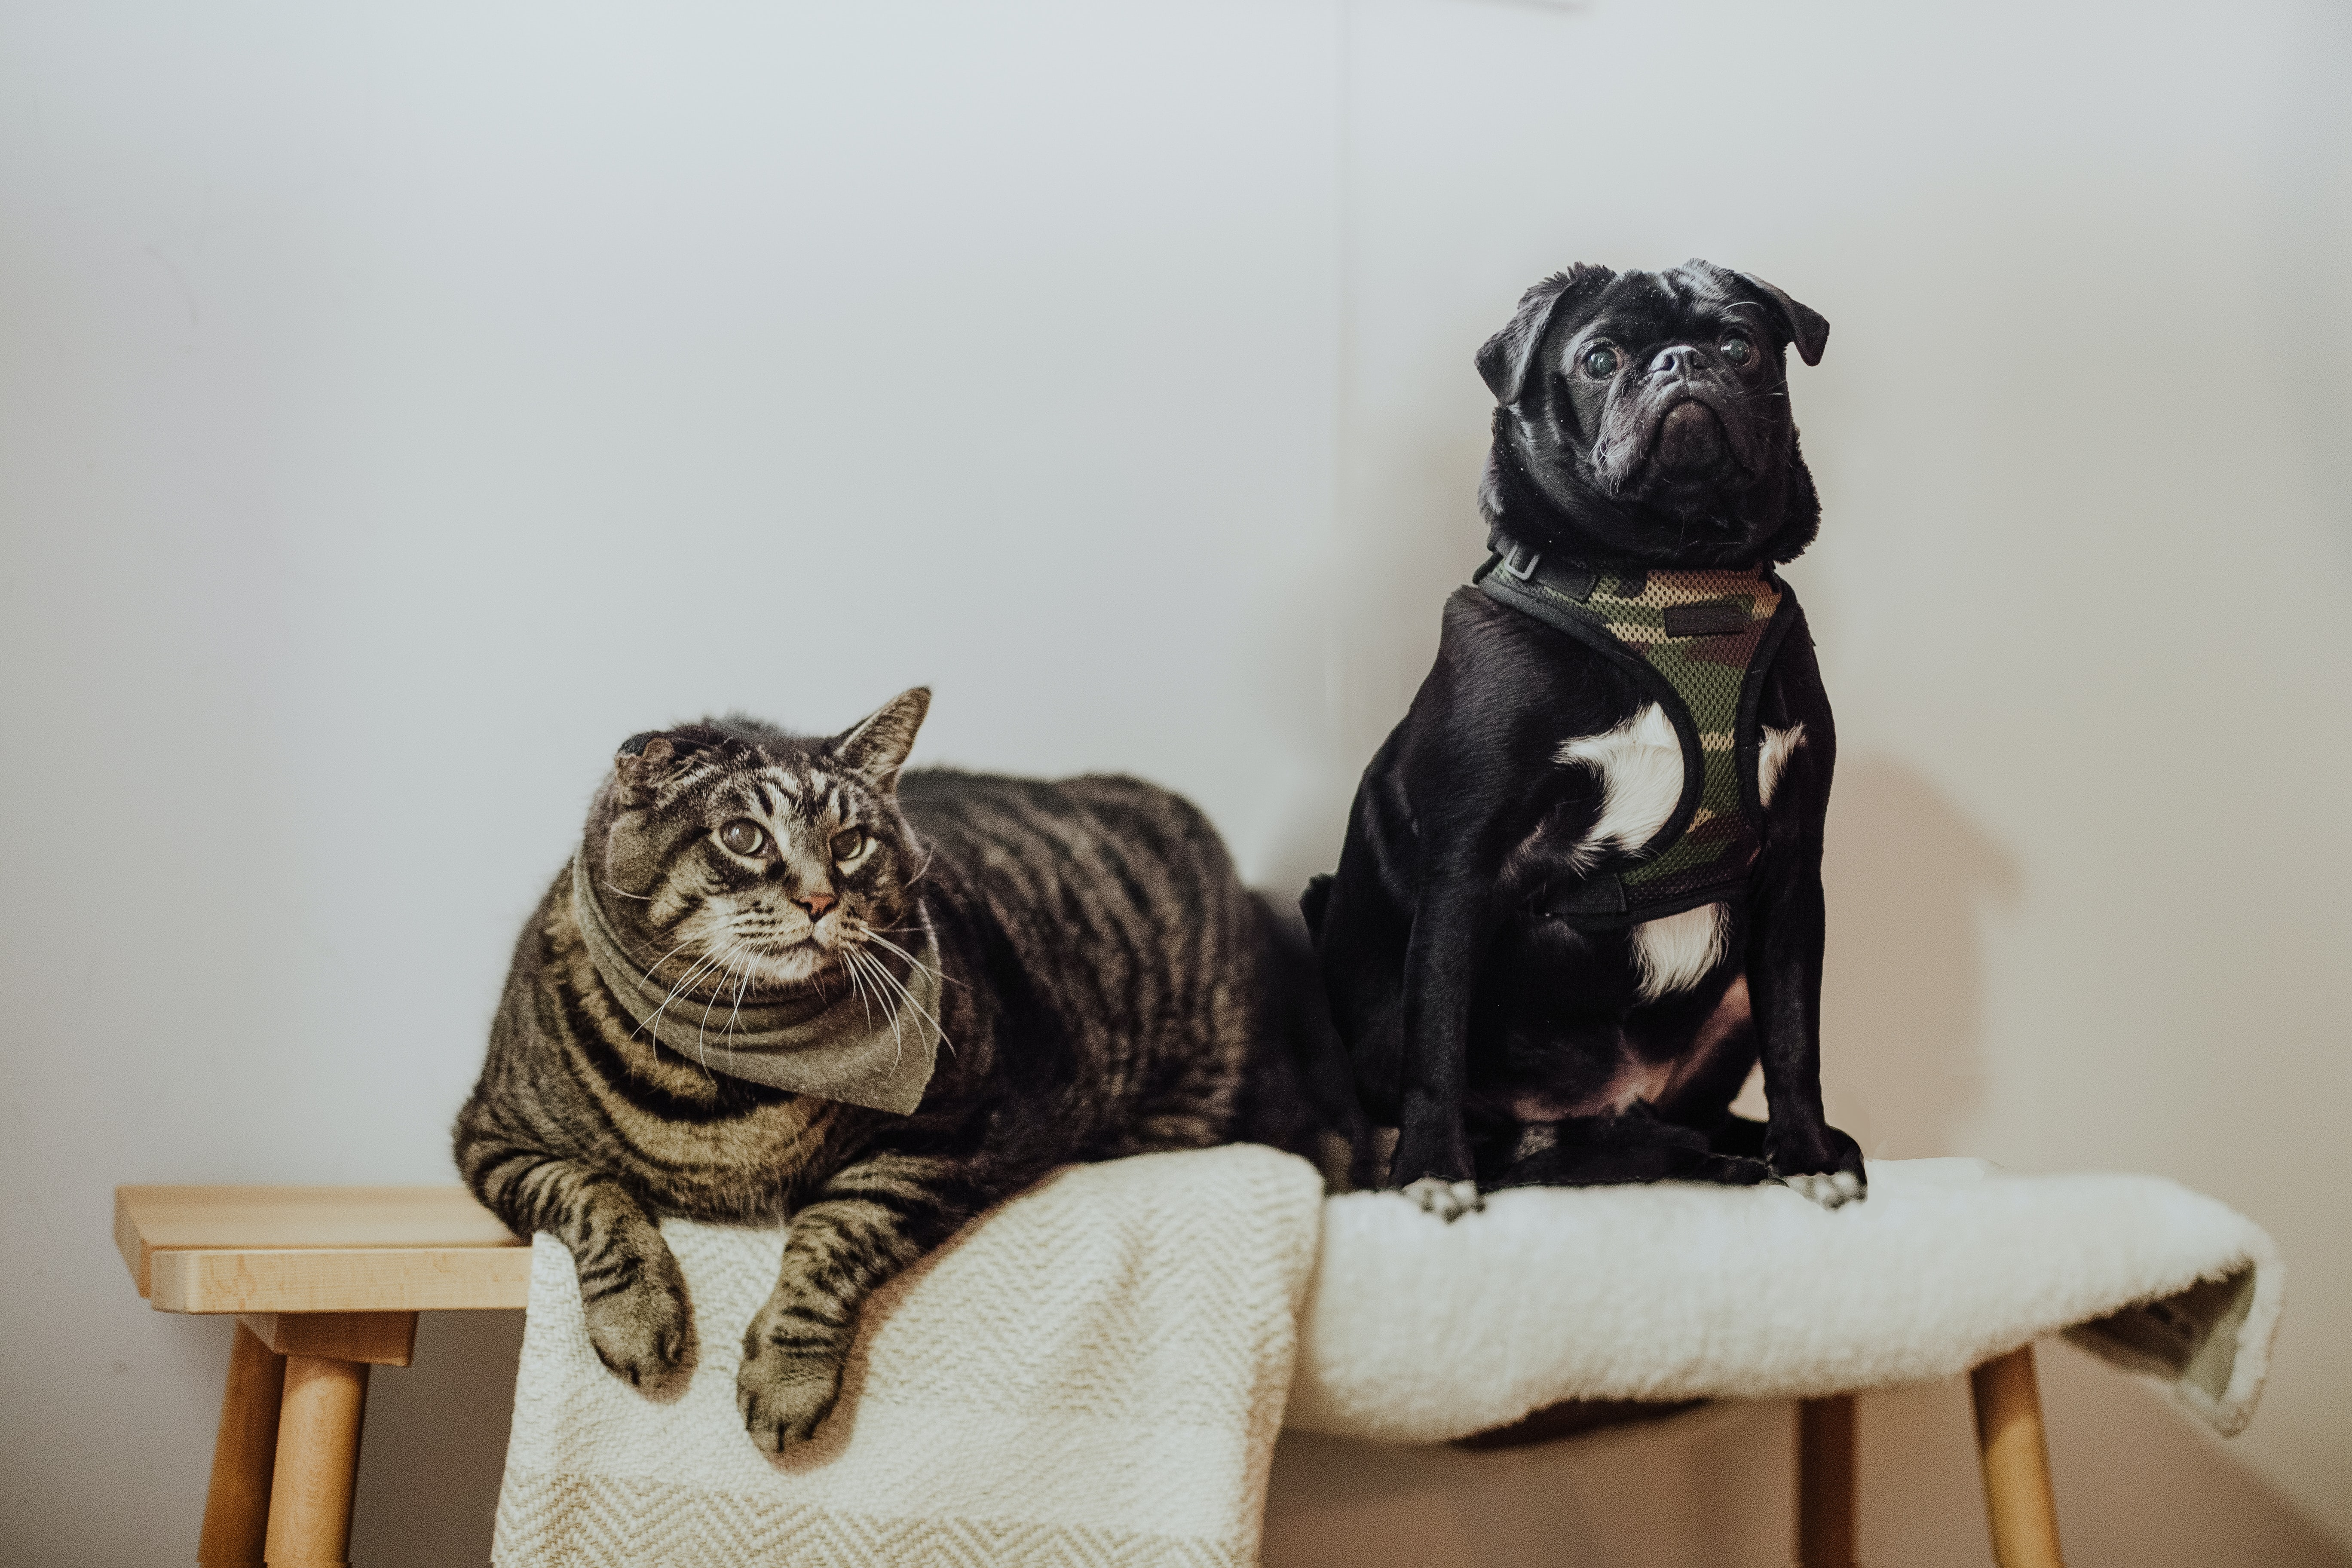 A cat and a dog sit on a stool